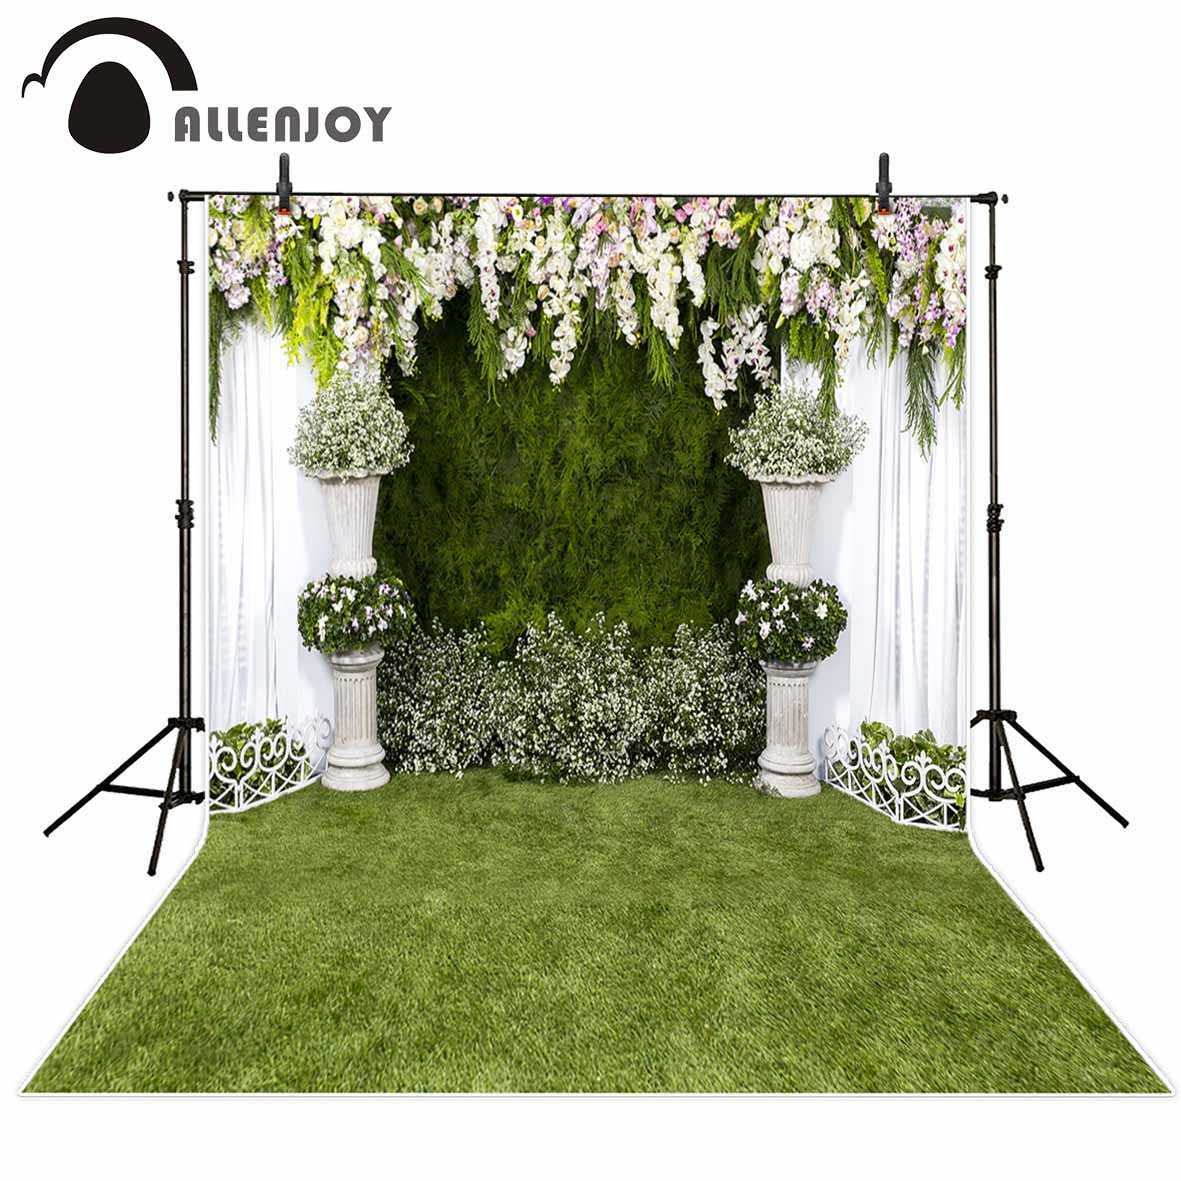 Allenjoy vinyl photographic background White grass flowers to celebrate the wedding backdrop photocall professional customize цена